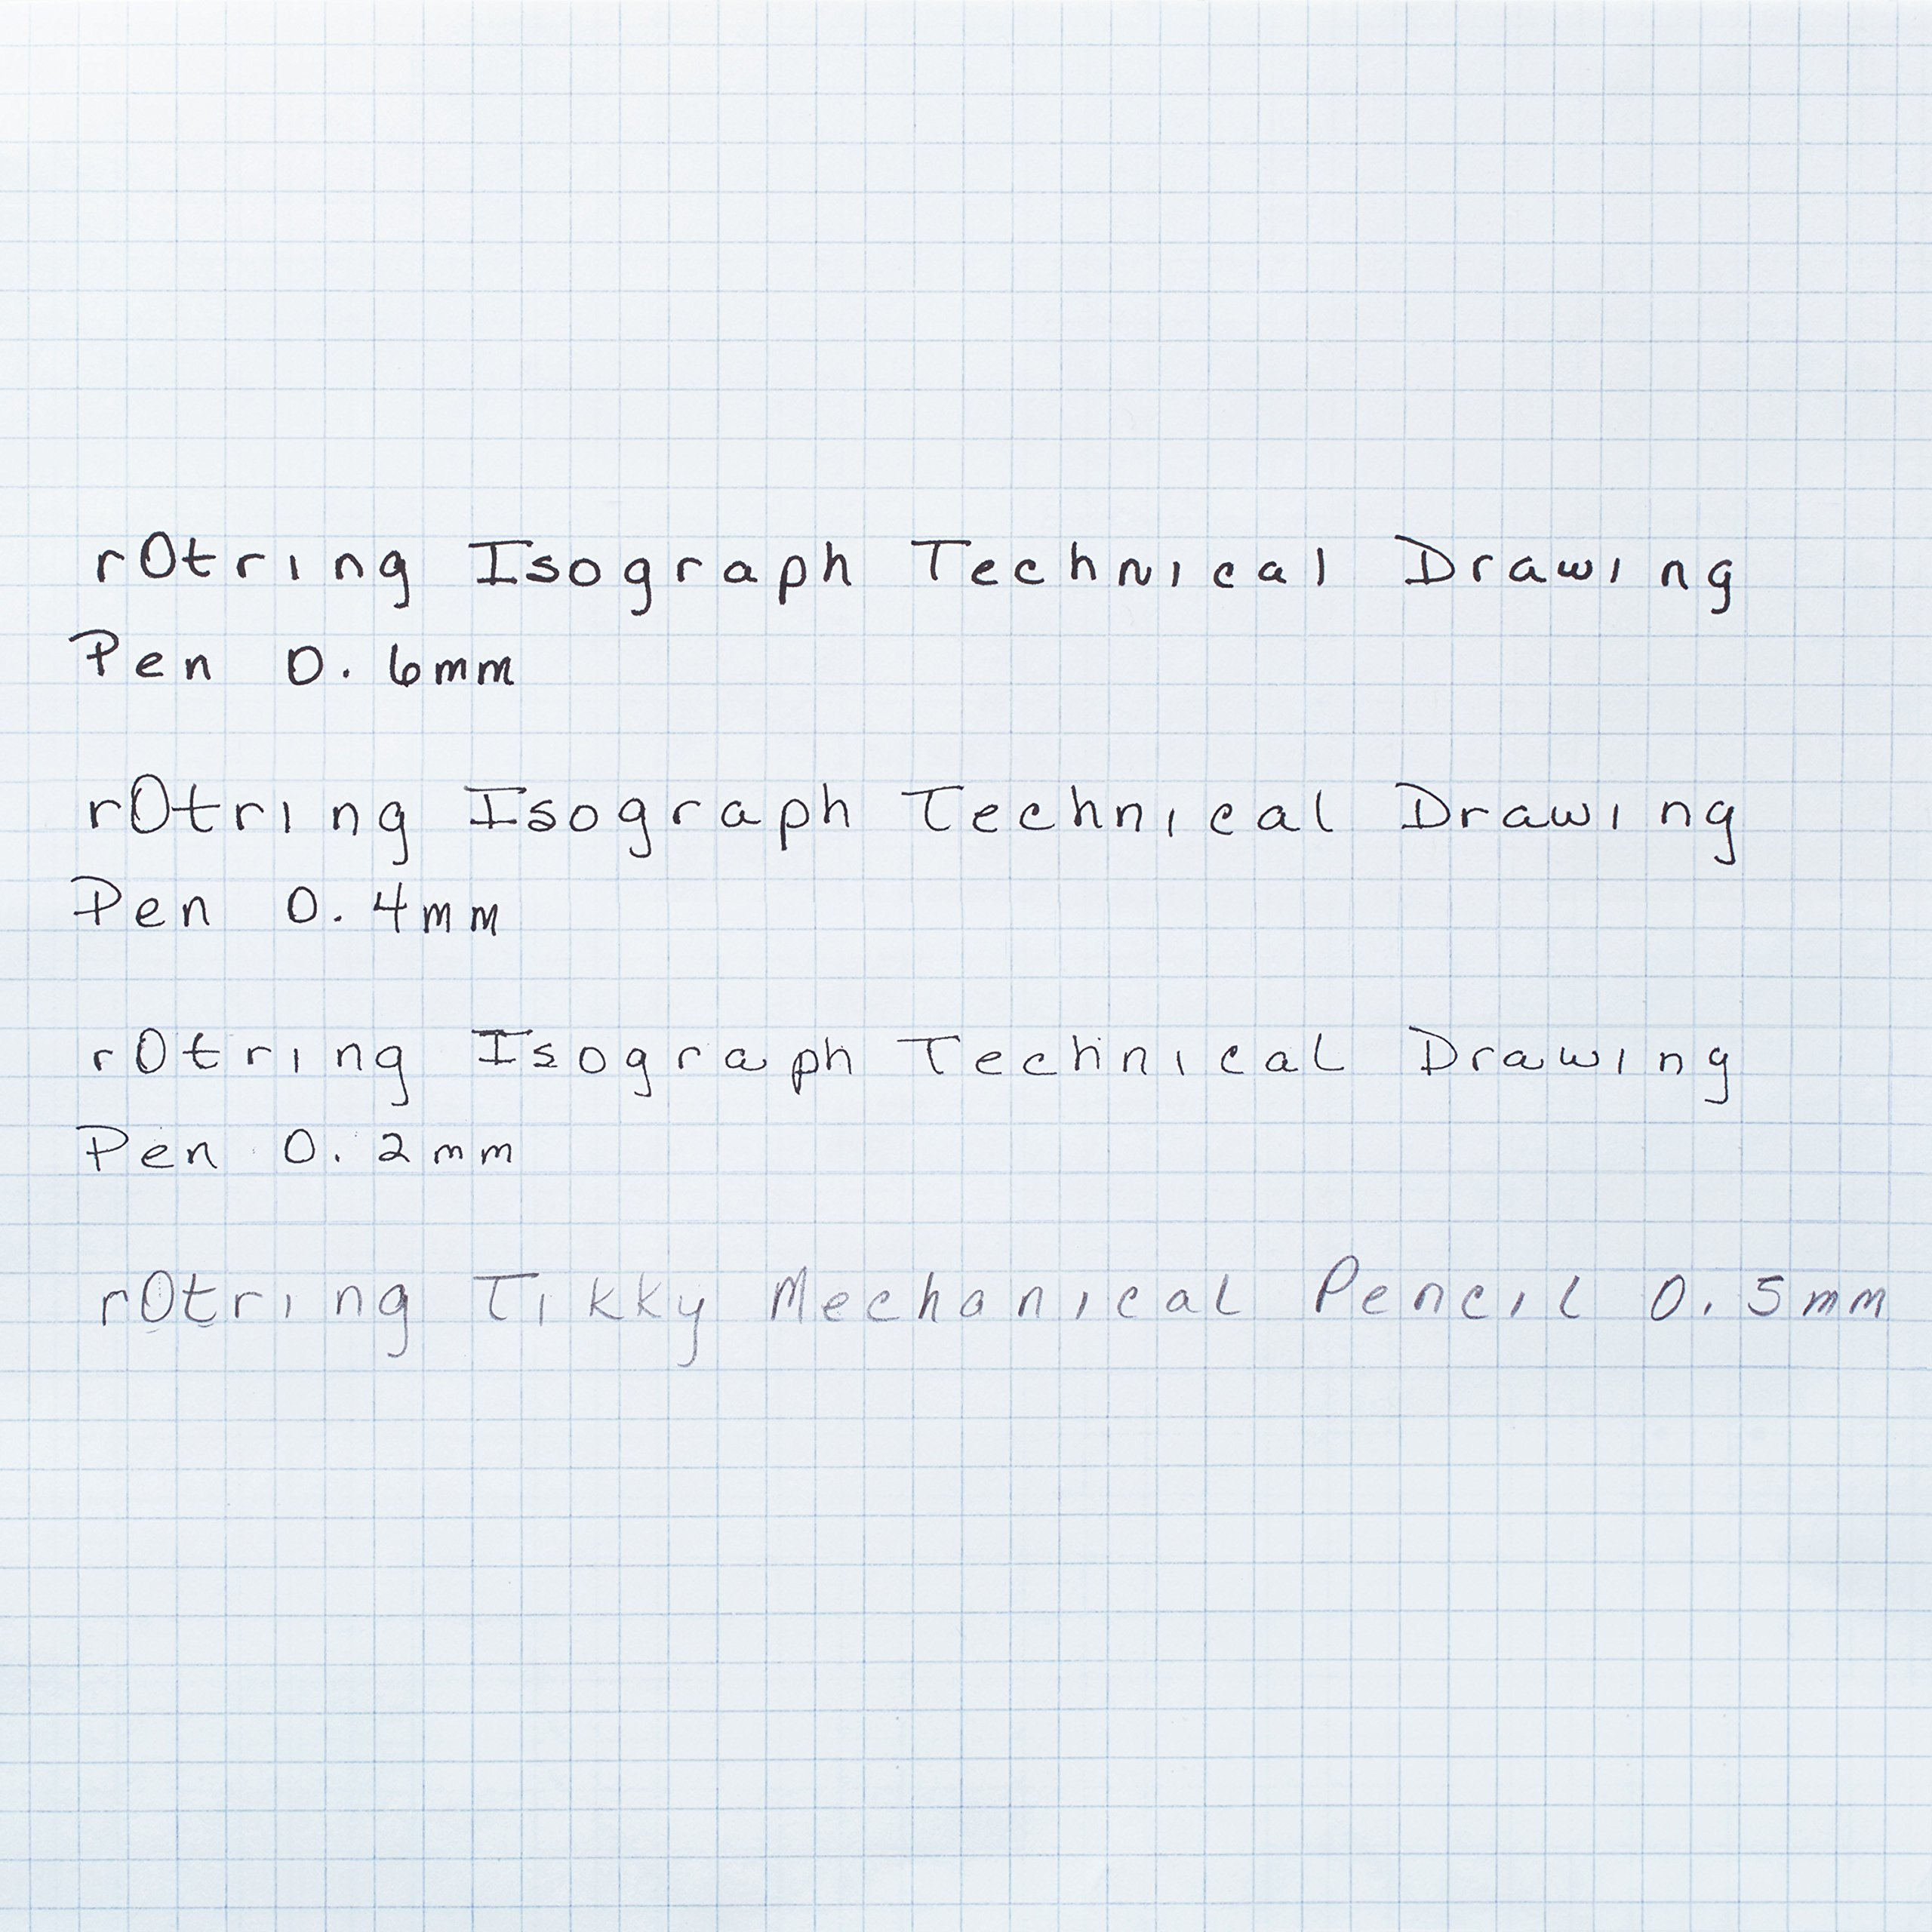 rOtring Isograph Technical Drawing Pens, Set, 3-Piece College Set (.20-60 mm) by Rotring (Image #3)